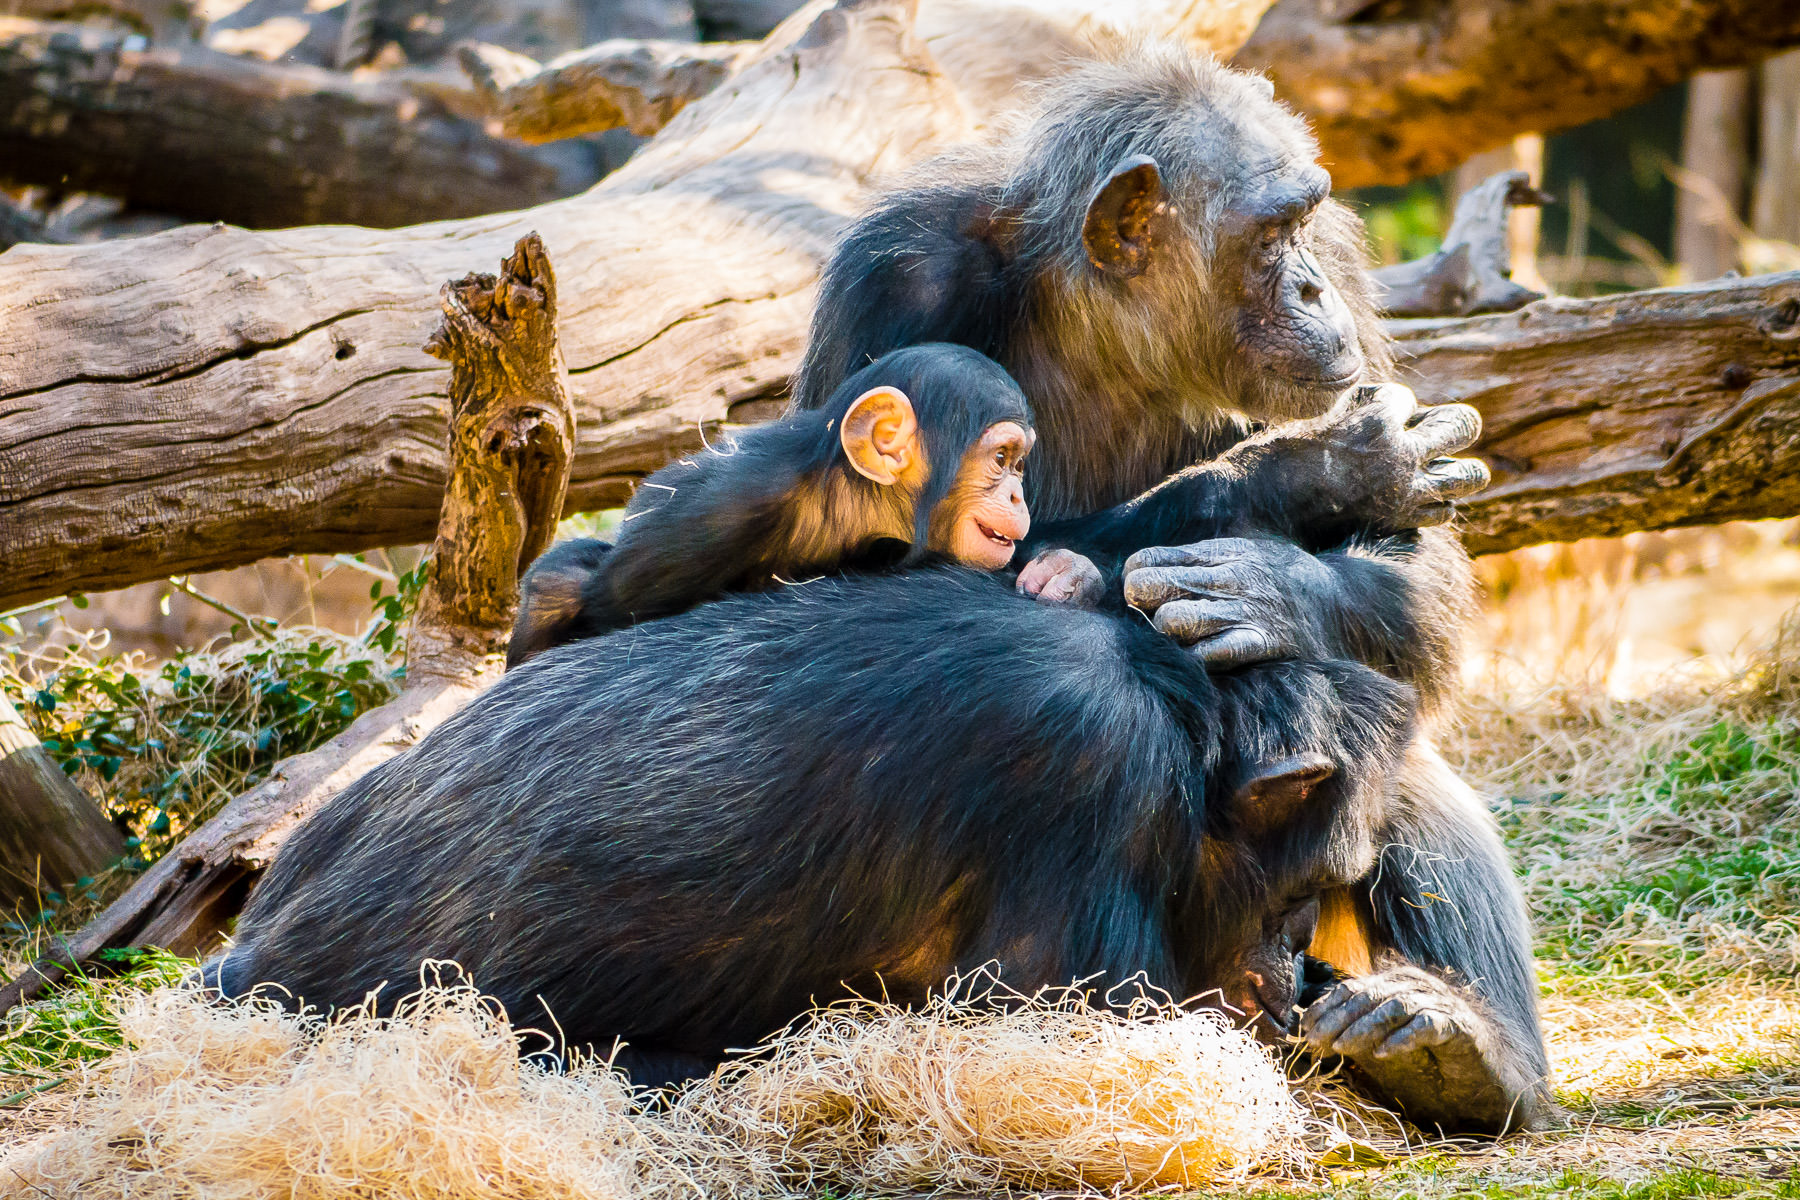 A family of chimpanzees at the Dallas Zoo.